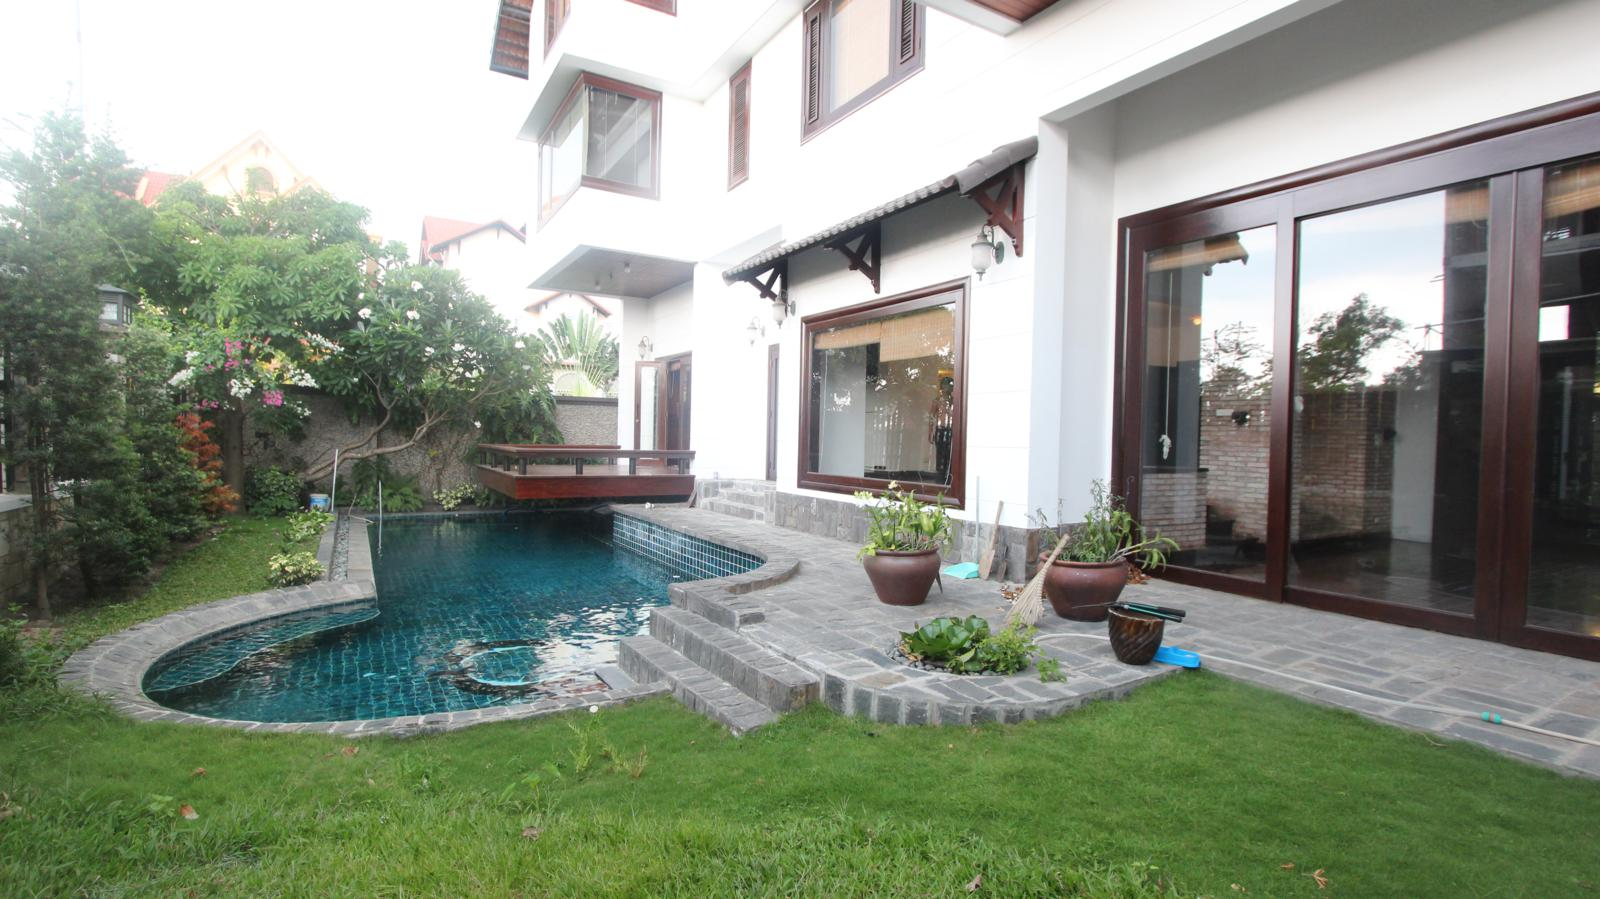 Swiming-pool-nice-villa-in-compound-for-rent-in-district 2-vc020231_1600x899